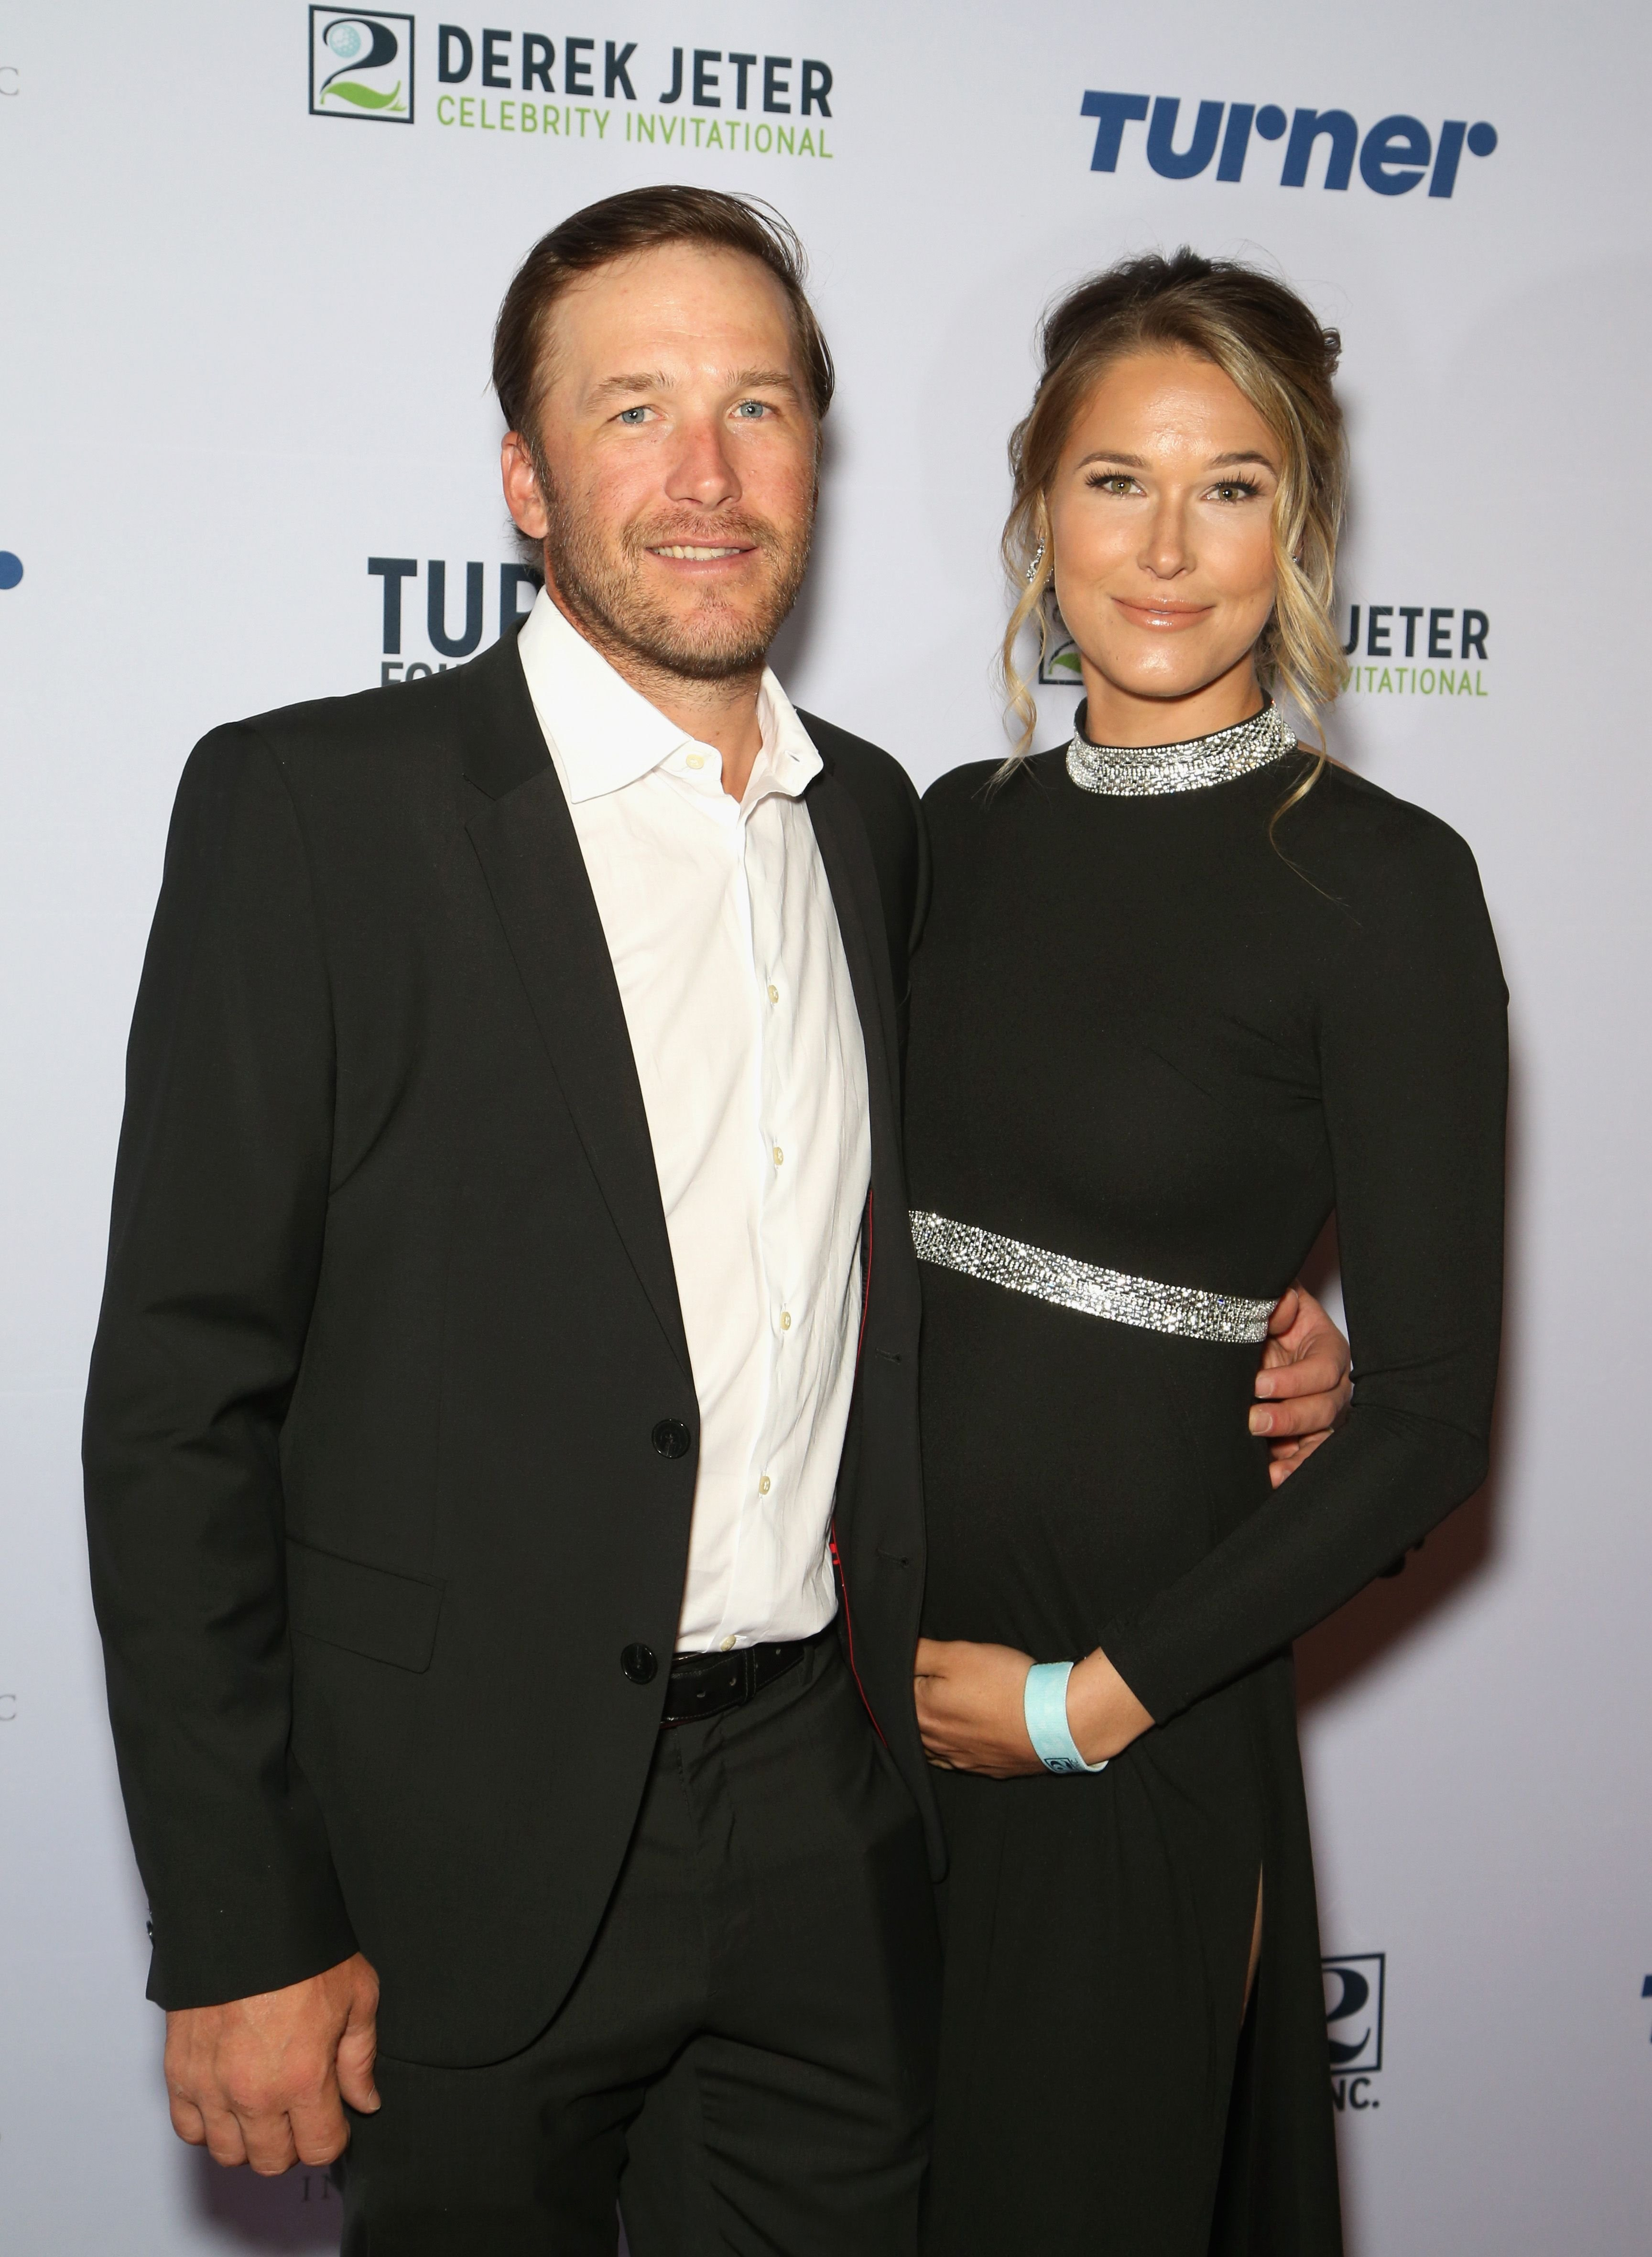 Bode Miller and his wife, Morgan Beck, attend the 2018 Derek Jeter Celebrity Invitational gala at the Aria Resort & Casino on April 19, 2018 in Las Vegas, Nevada | Photo: Getty Images